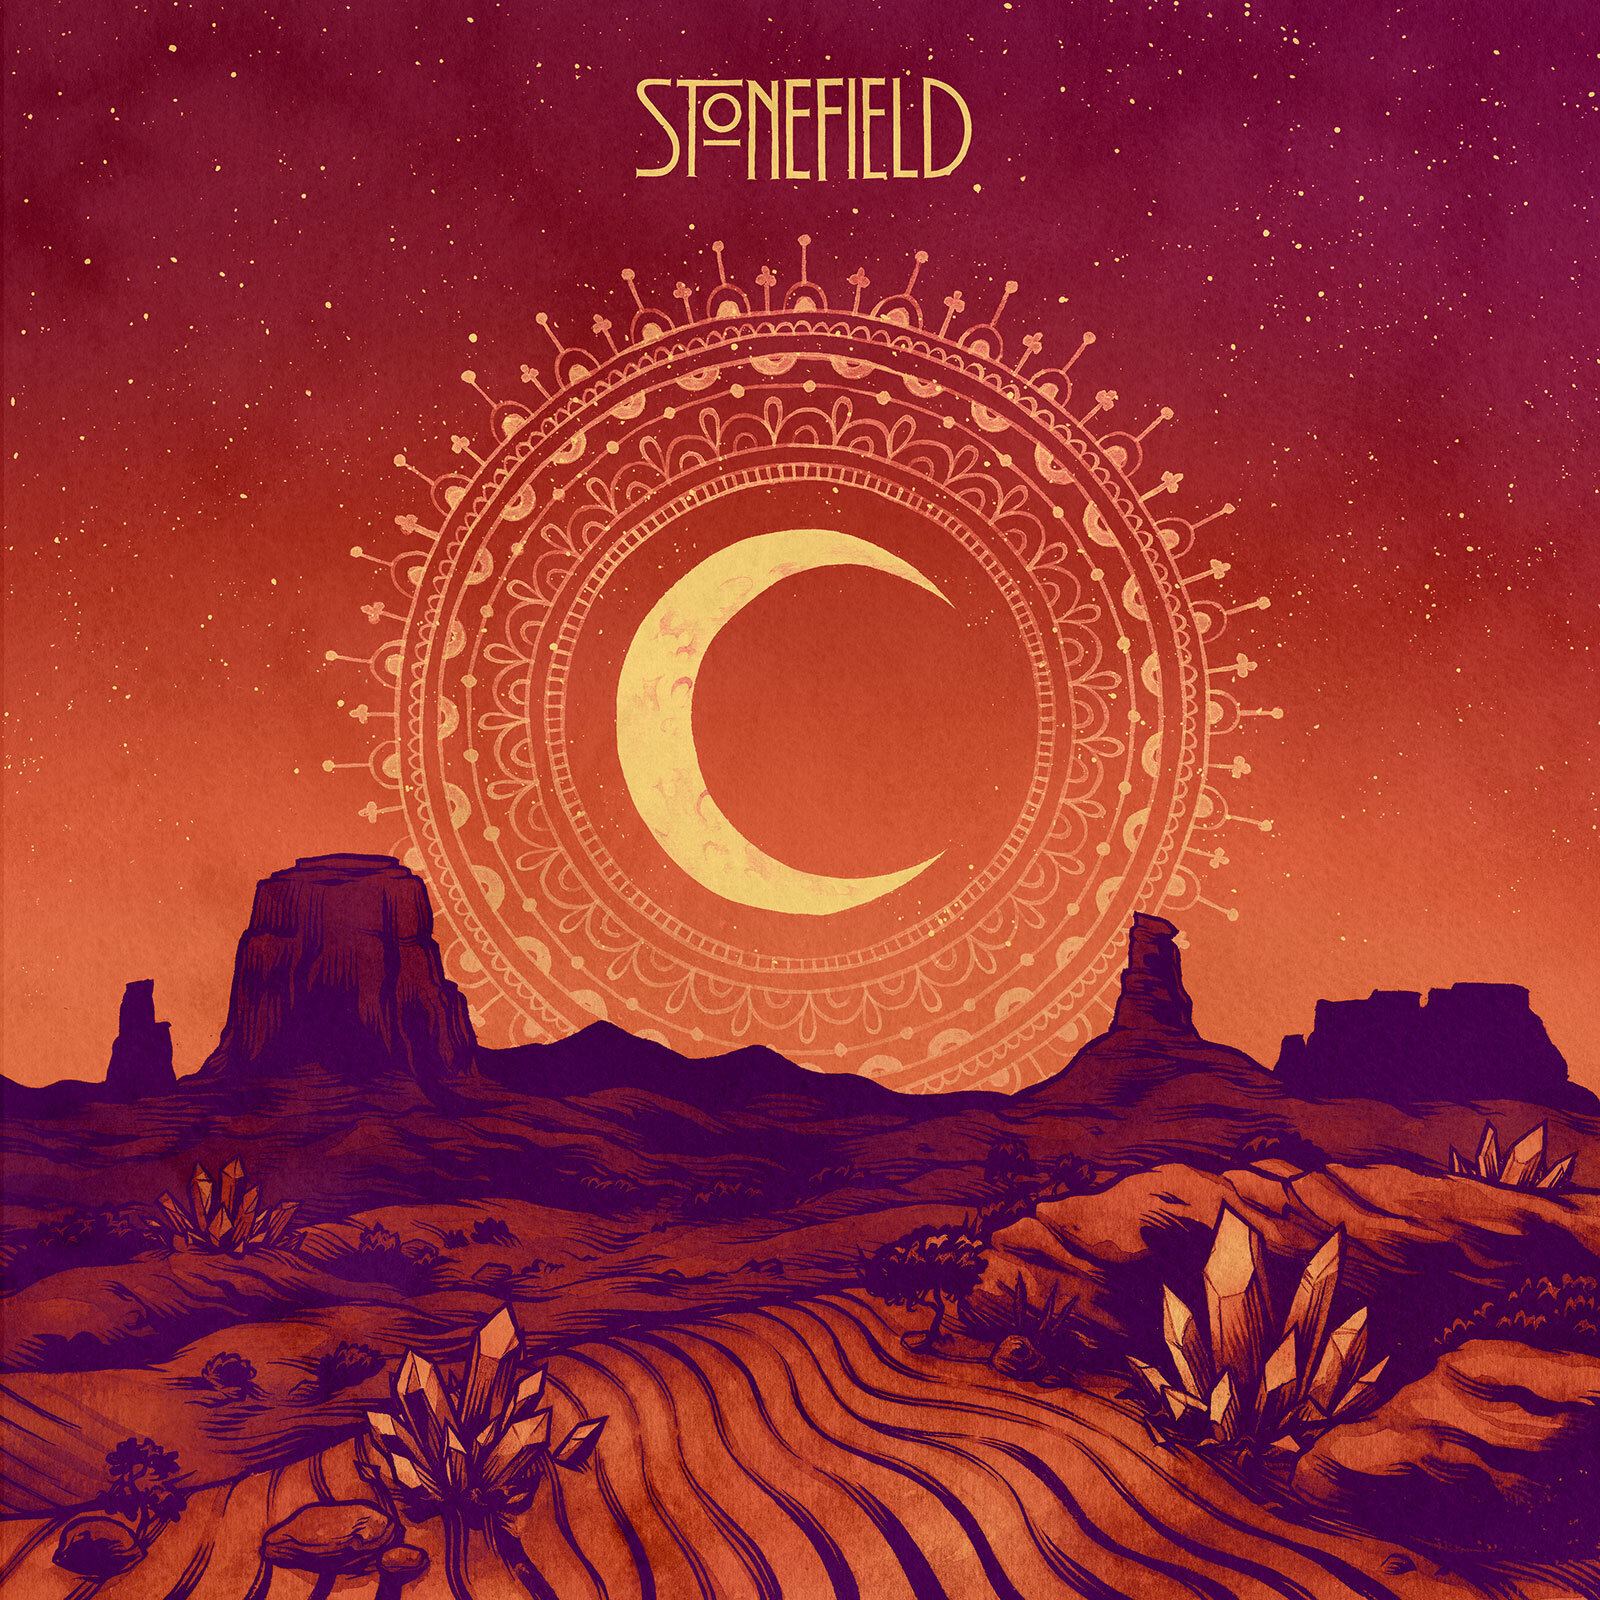 Cover illustration for Stonefield's 2013 self-titled LP